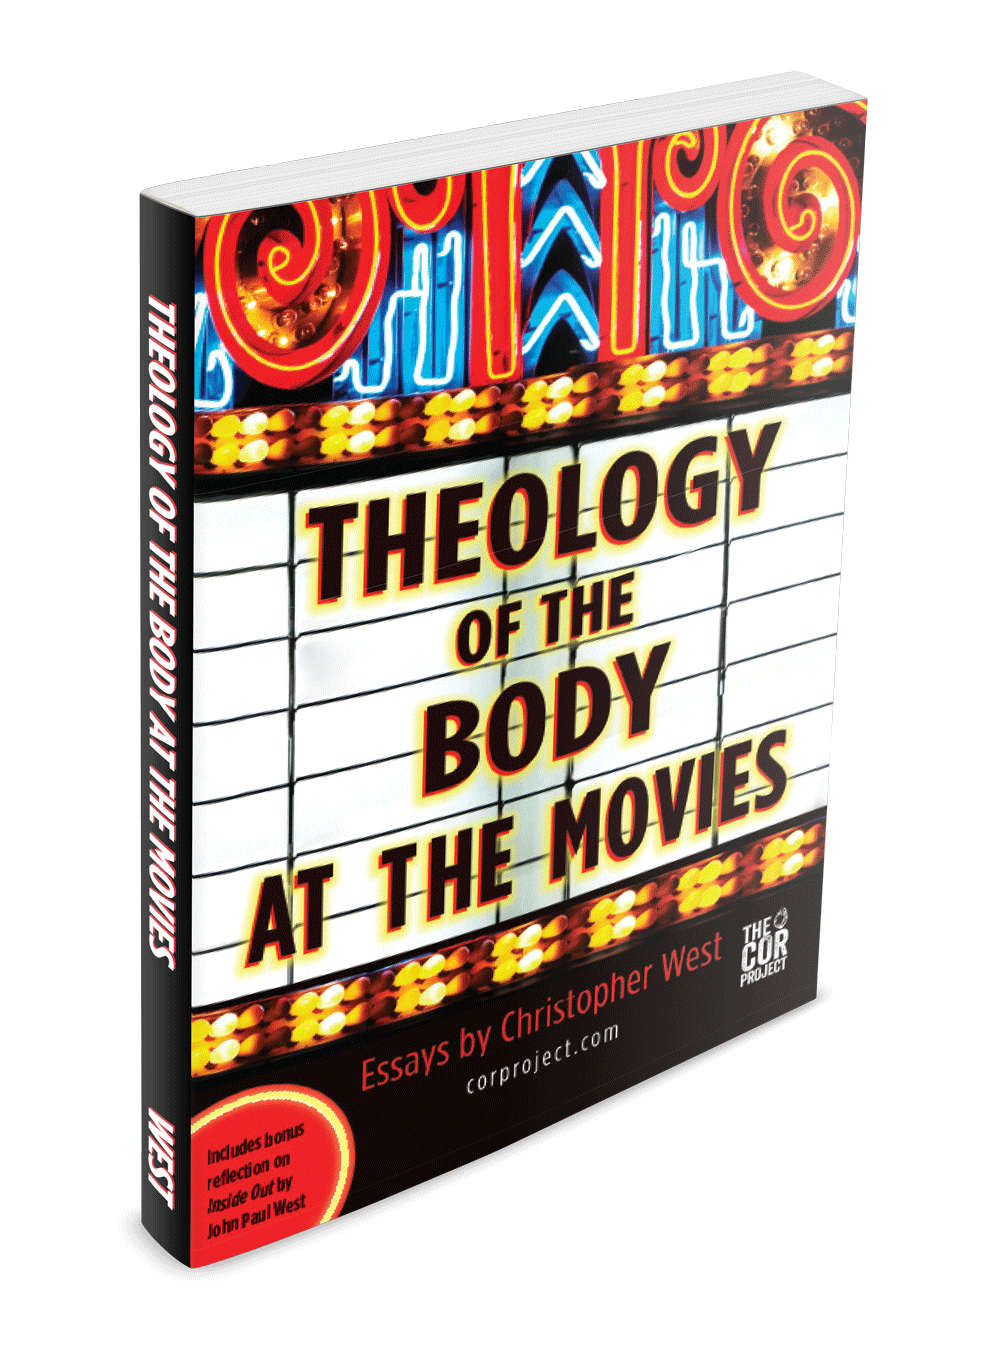 bafeaecbecc png enter your e mail below to receive a pdf of theology of the body at the movies